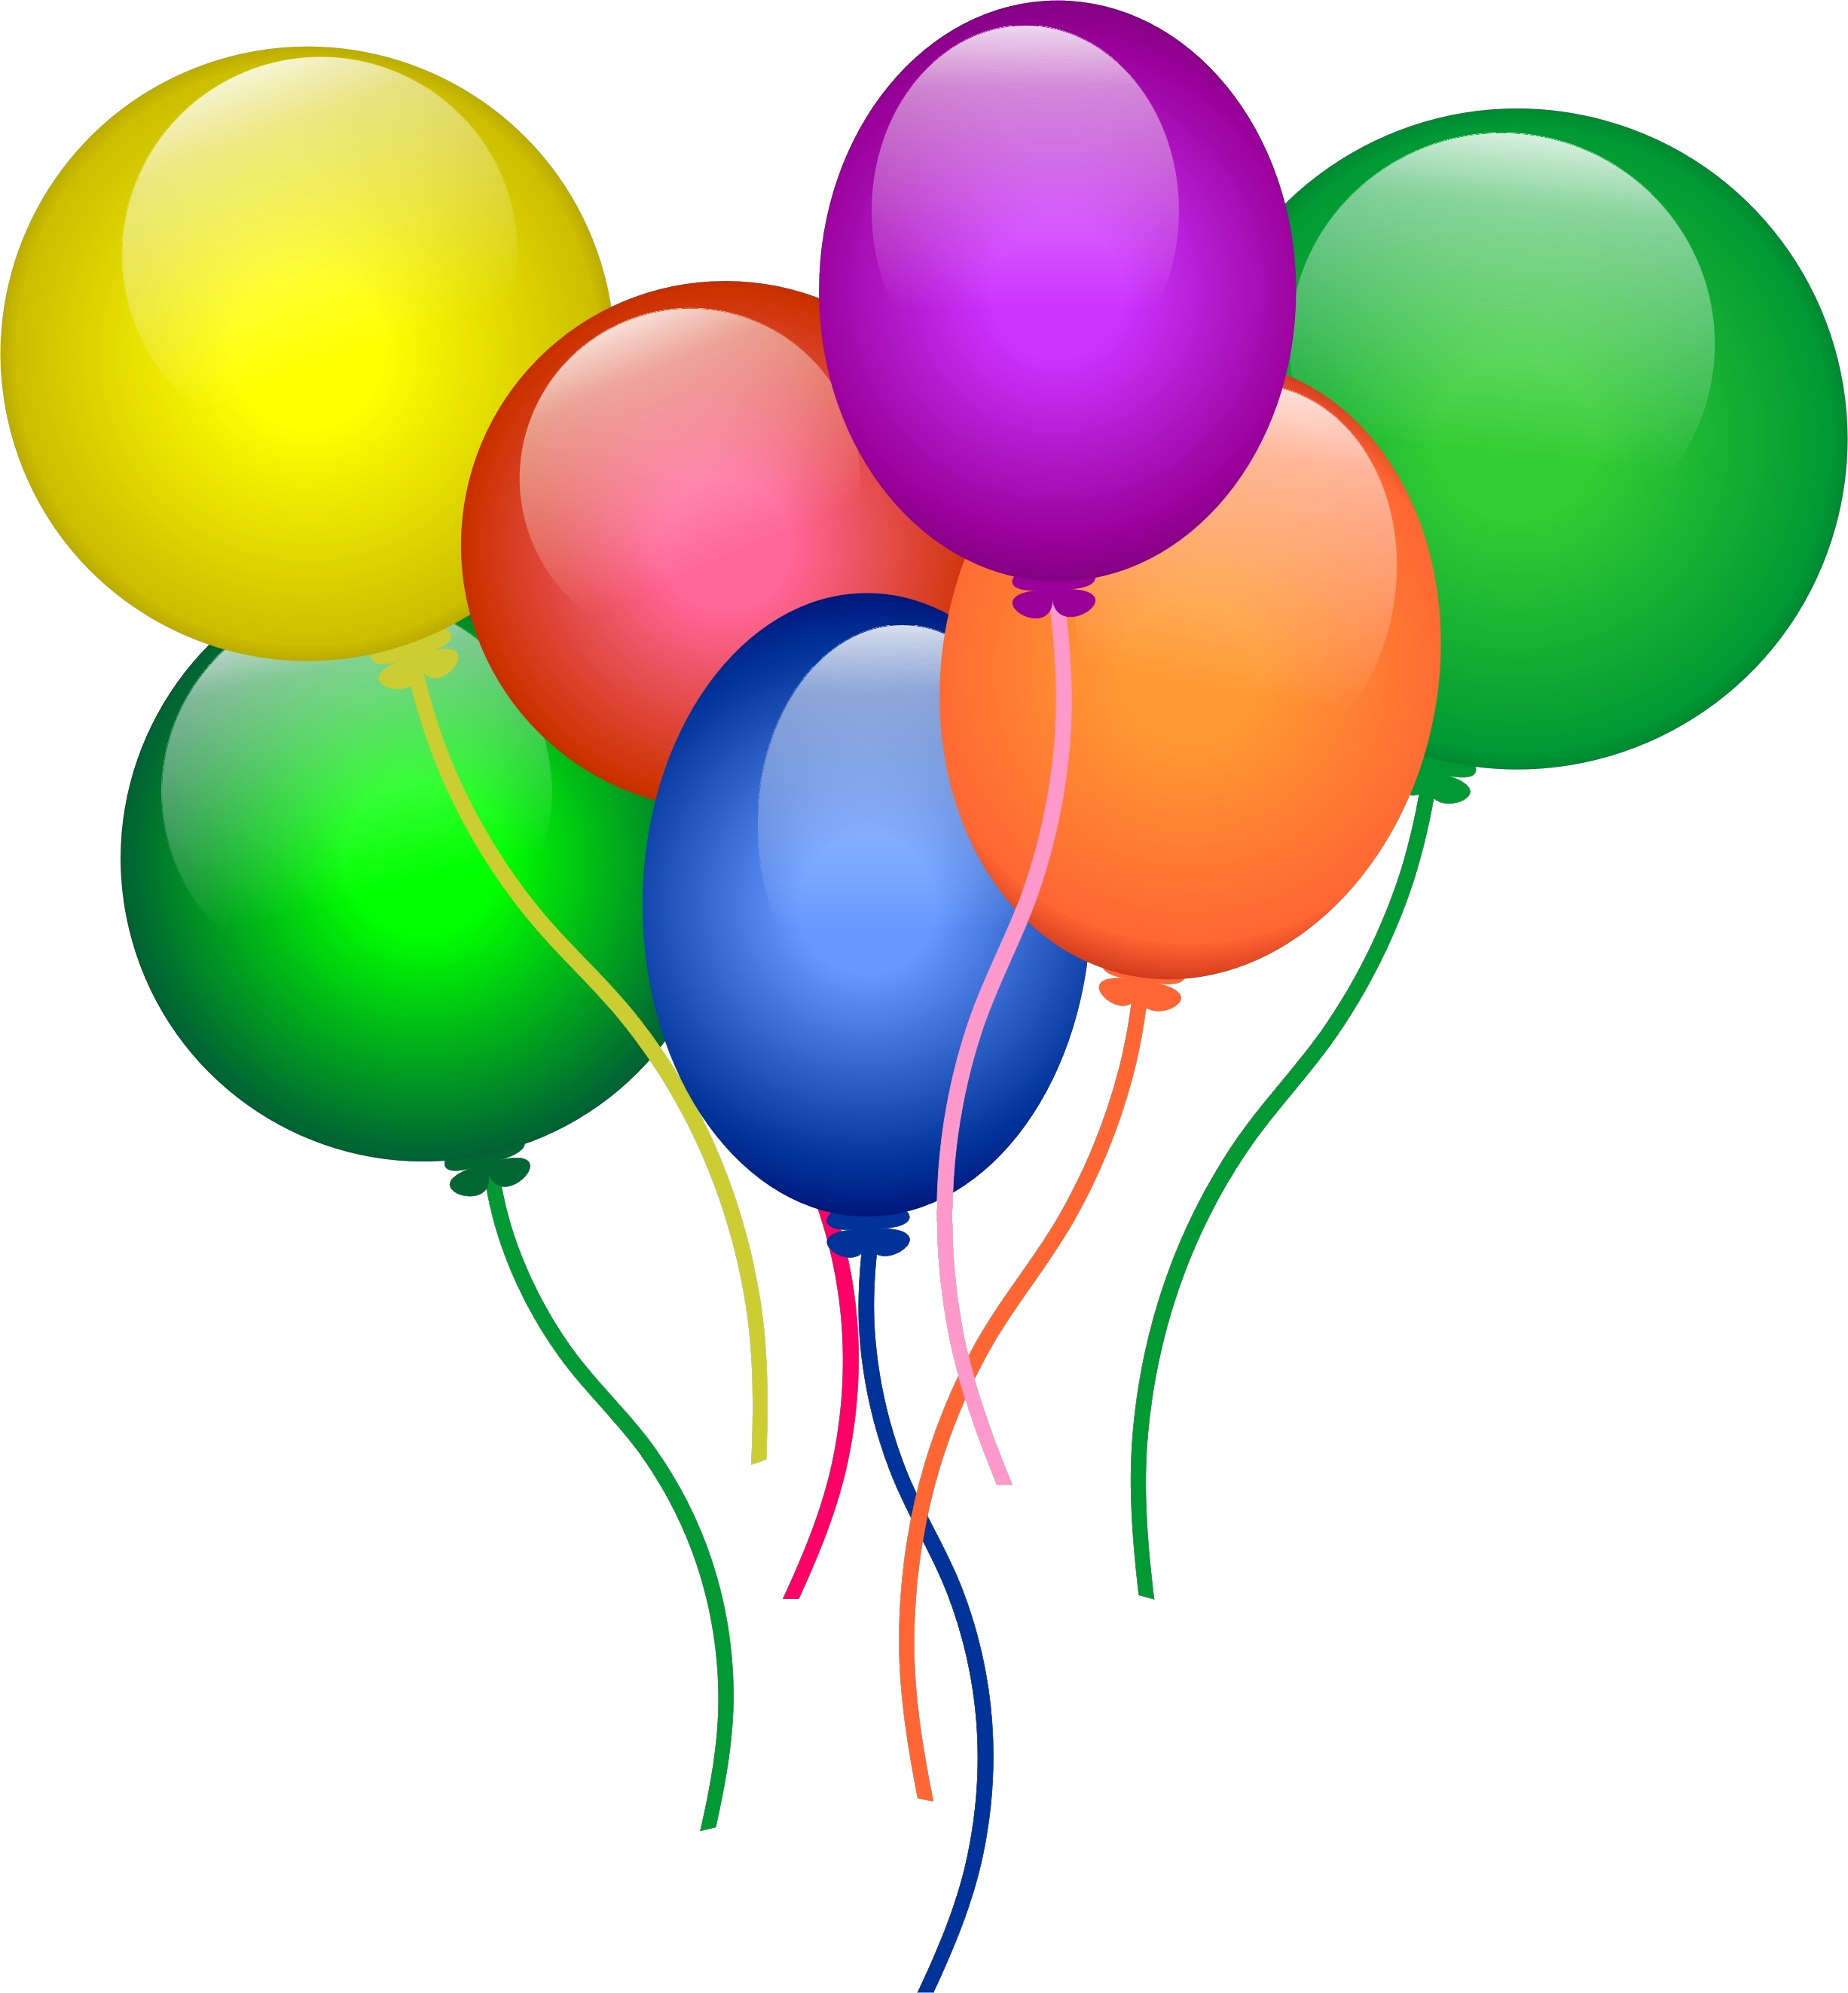 The end of unsafety. Clipart balloon gate